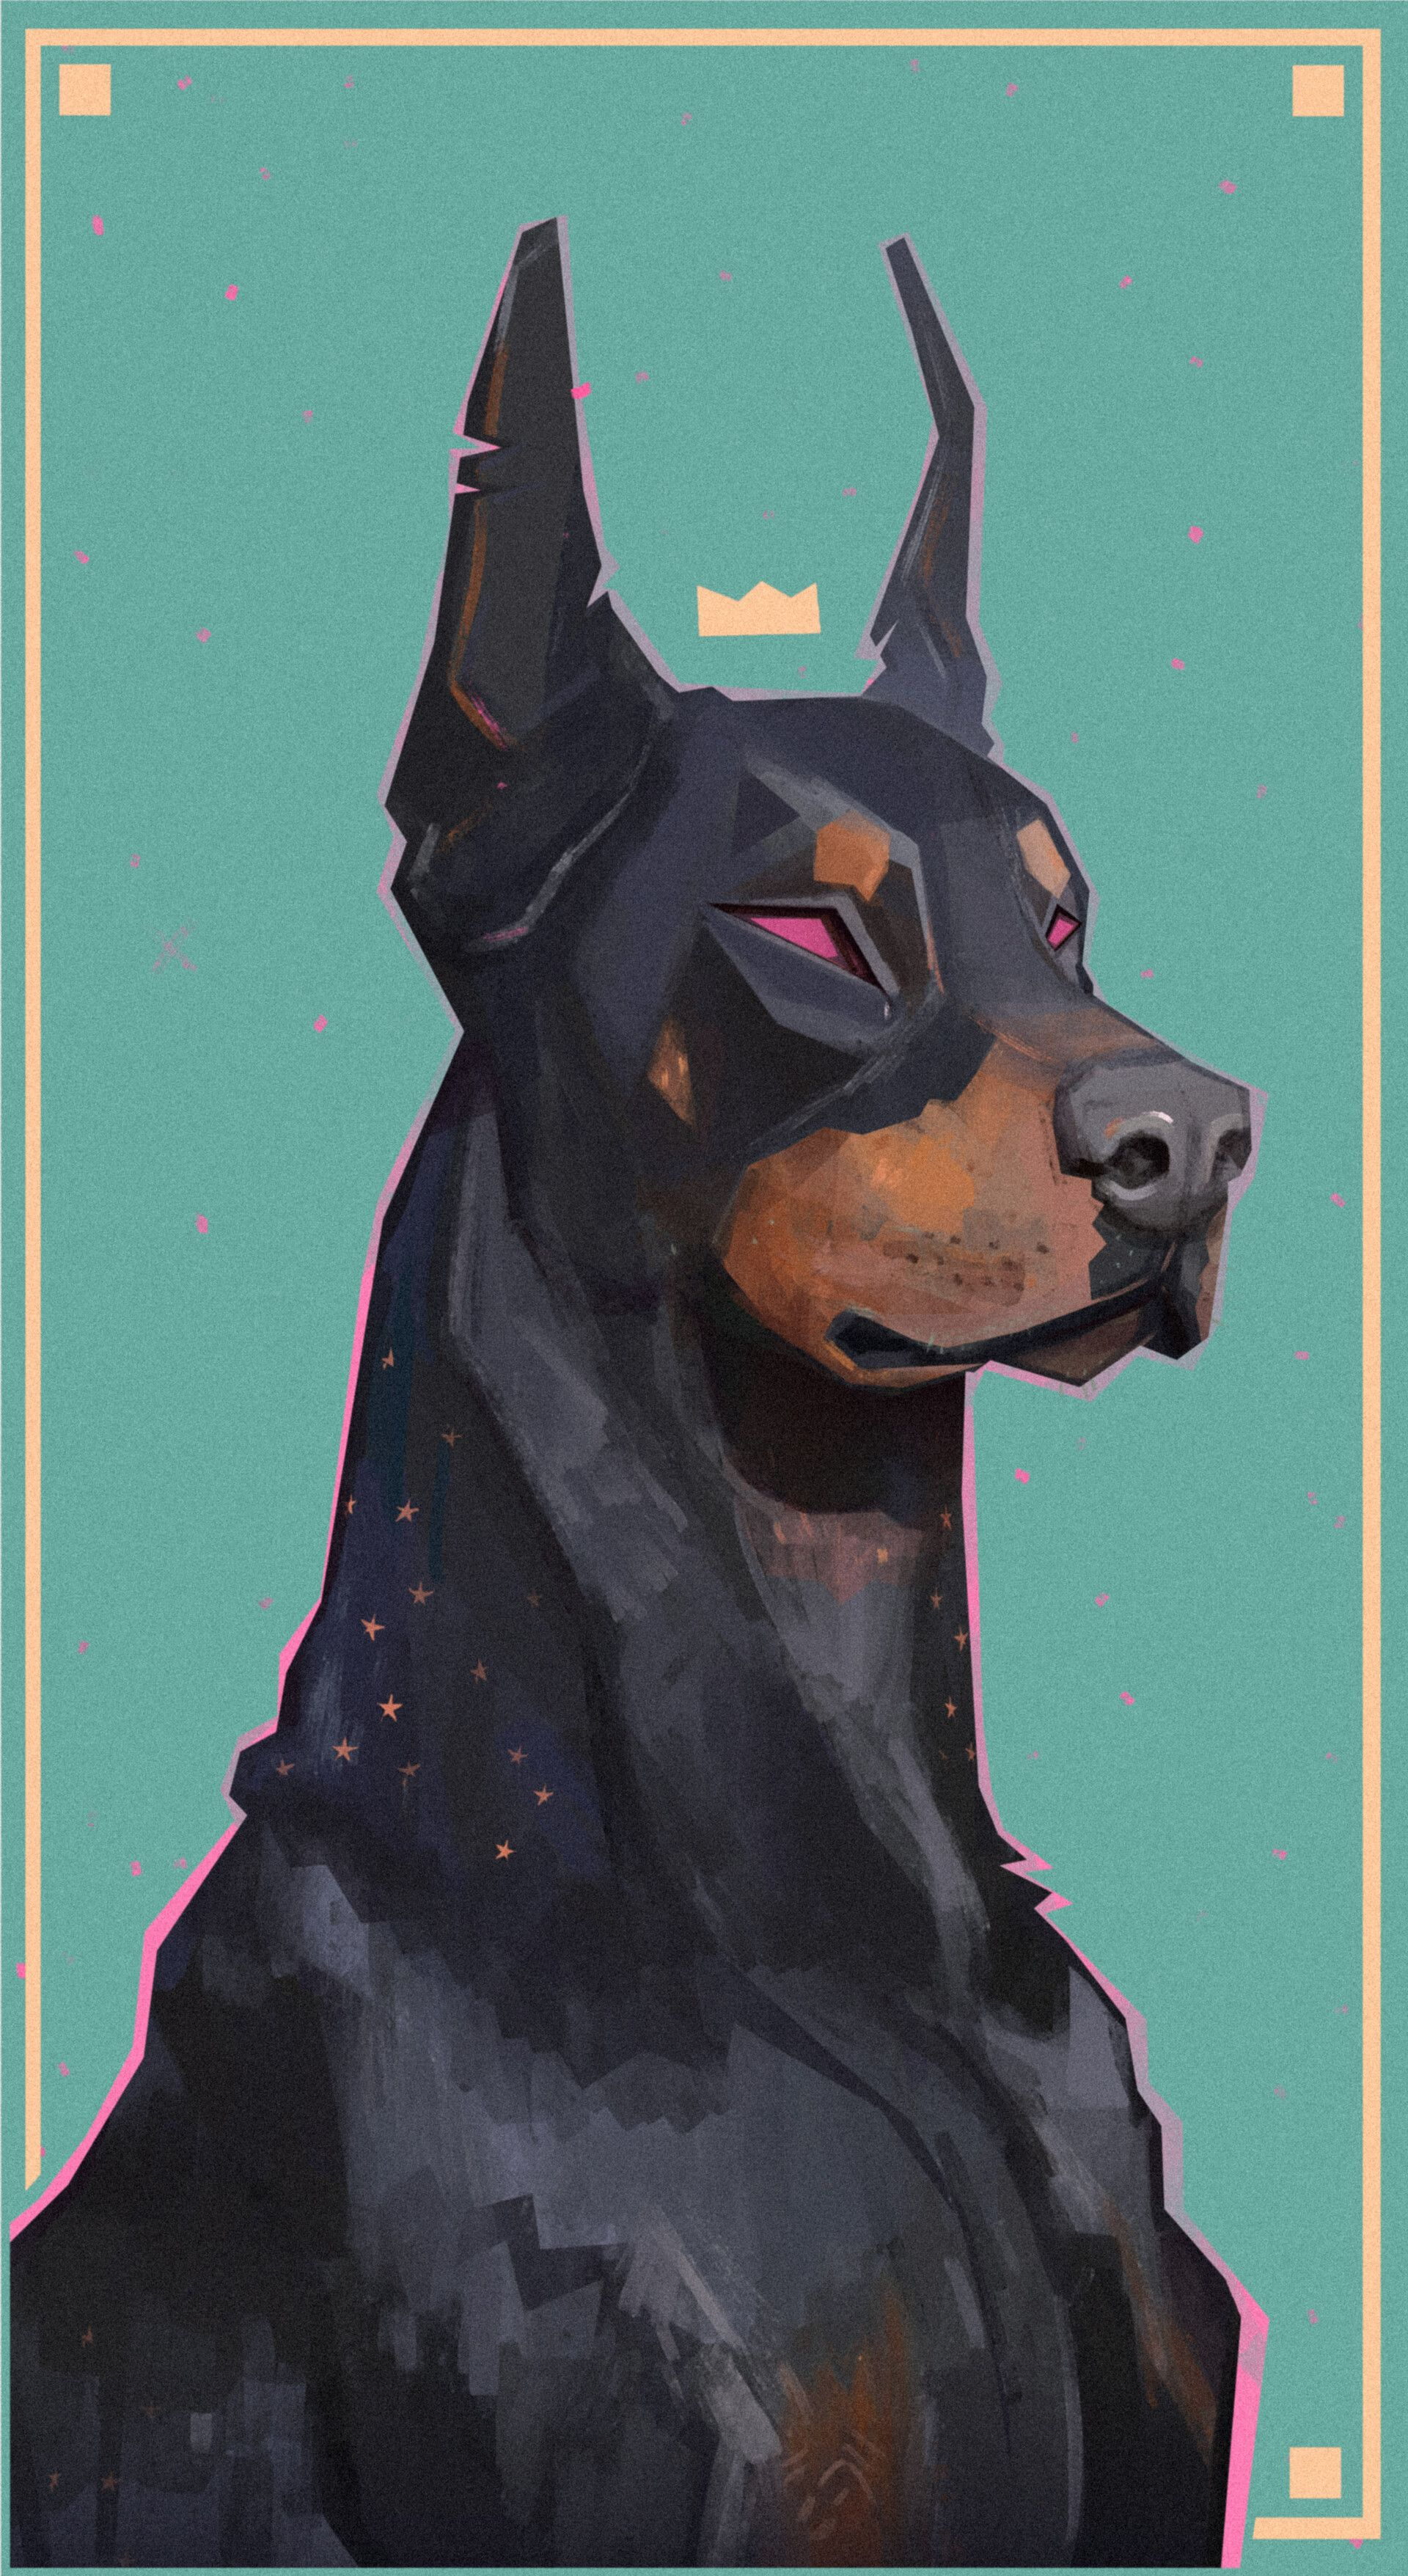 Artstation king dobermann françois bourdin grafica d in